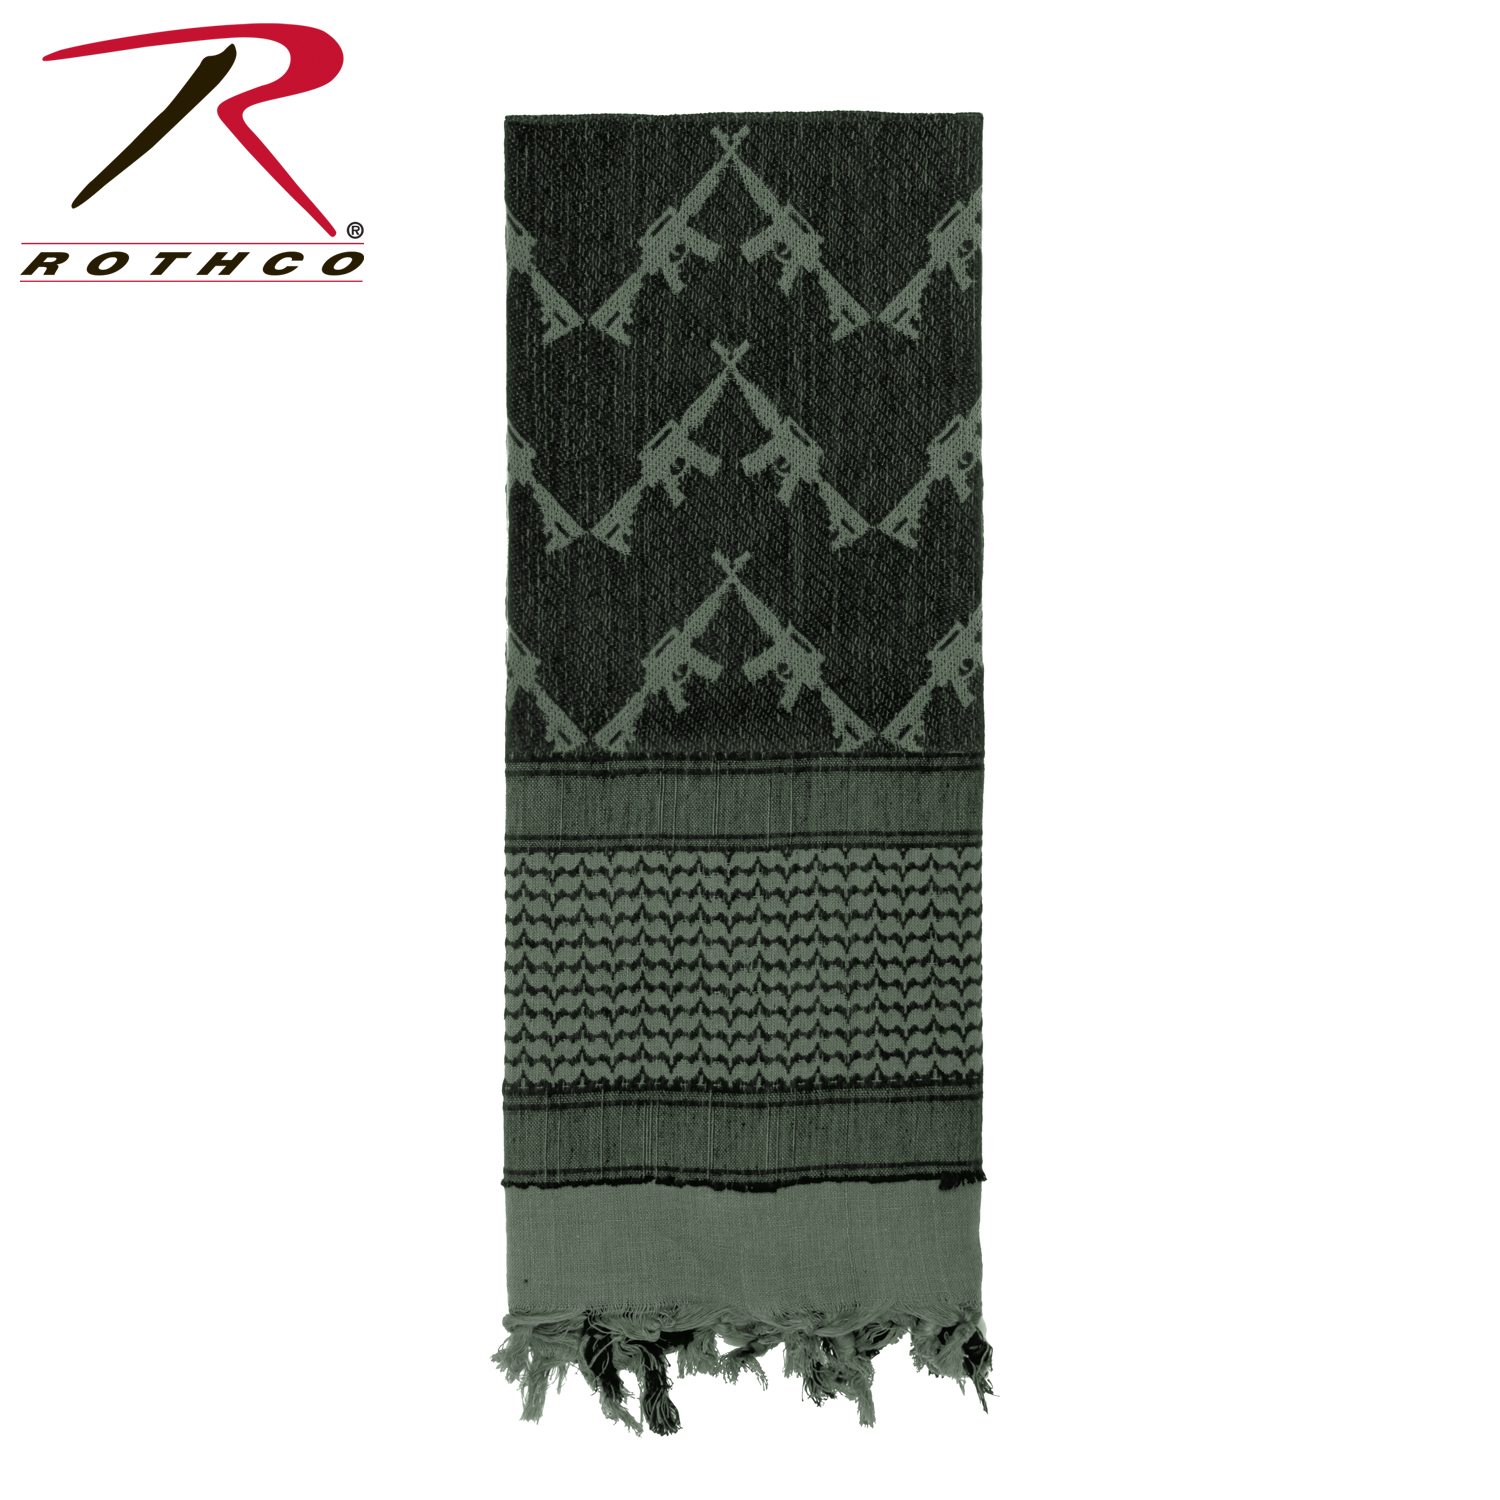 Rothco 8737 Crossed Rifles Shemagh Tactical Scarf